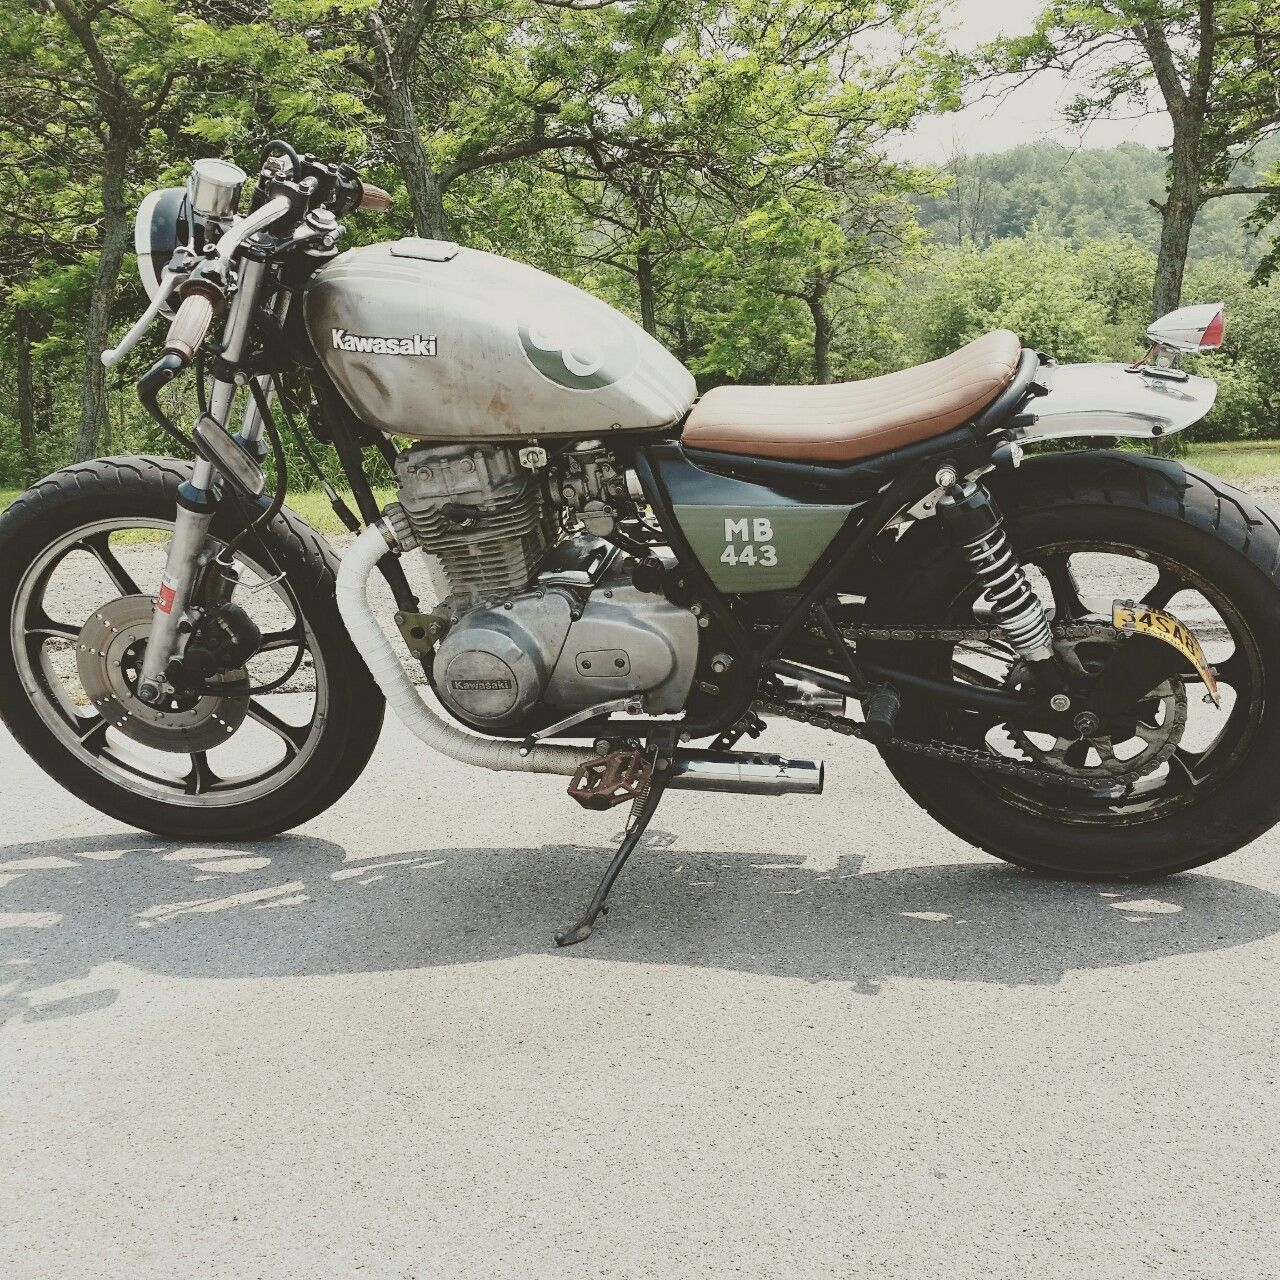 quigleyje submitted a pic of this Kawasaki KZ440 custom bike. Check ...